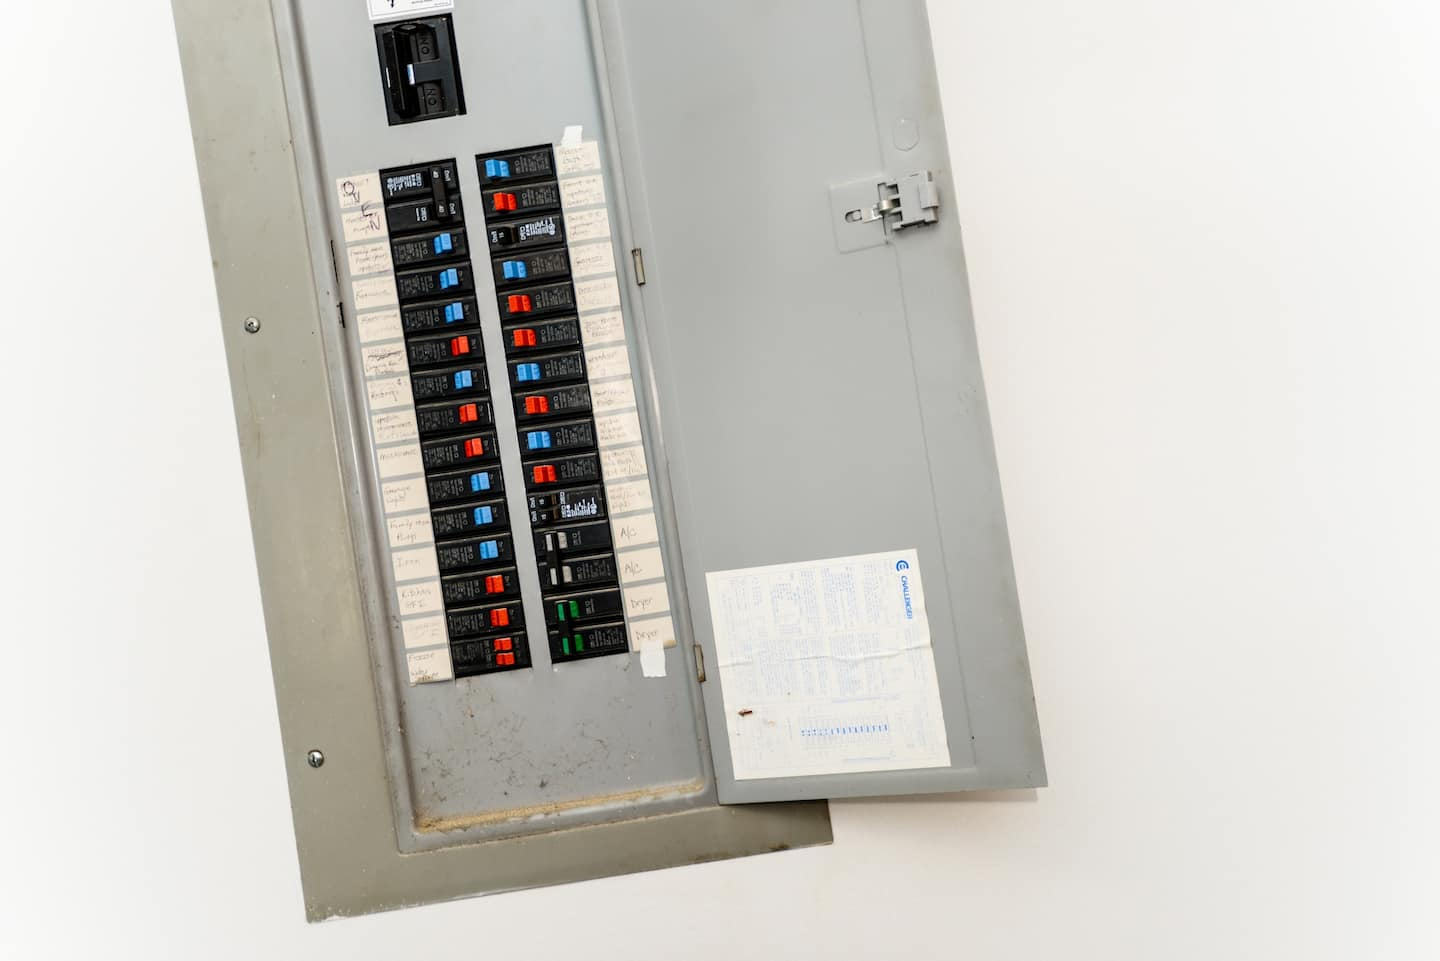 circuit breaker panel how water gets into electrical circuit panels angie's list Main Breaker Fuse Box at edmiracle.co